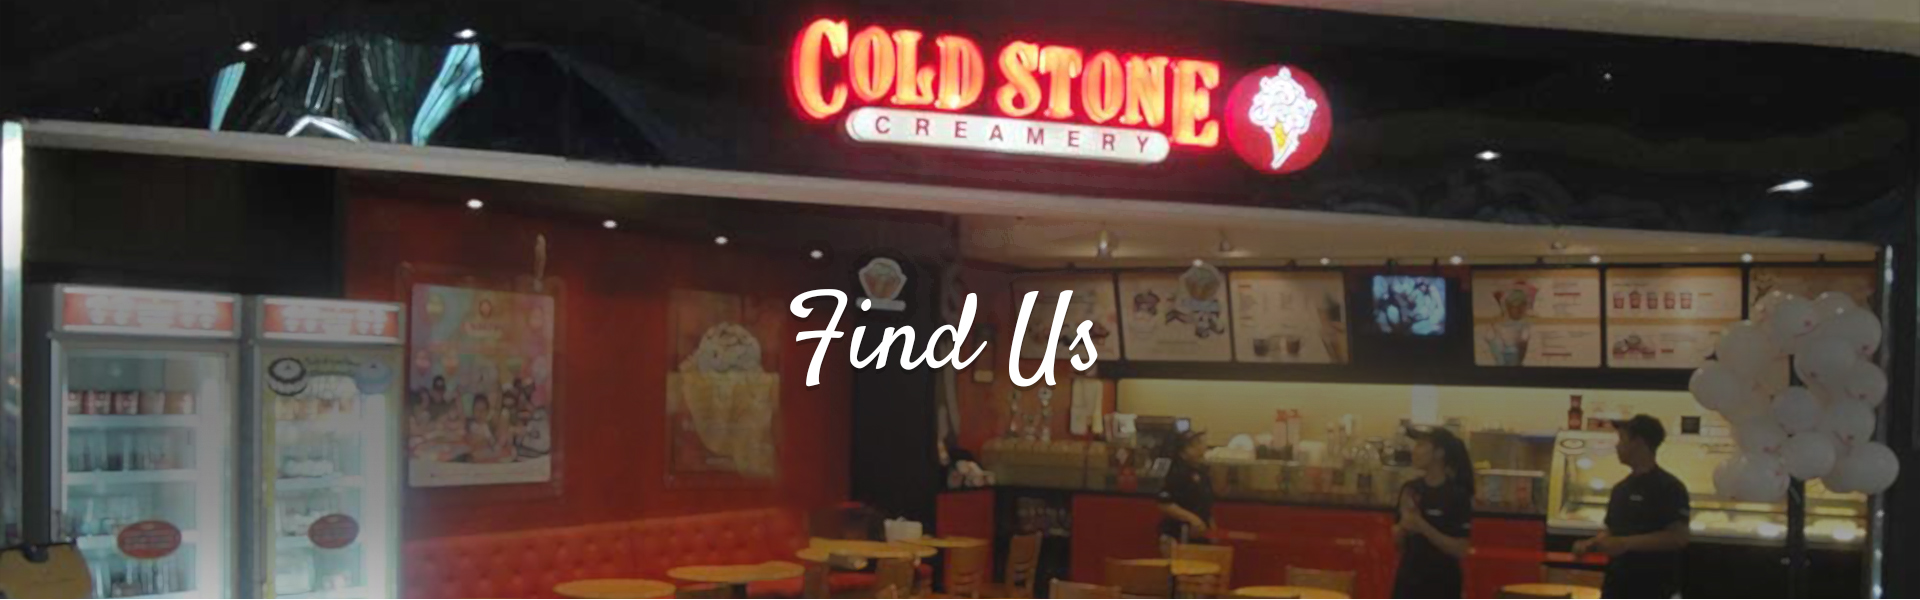 Cold Stone Creamery Stores Location At Indonesia